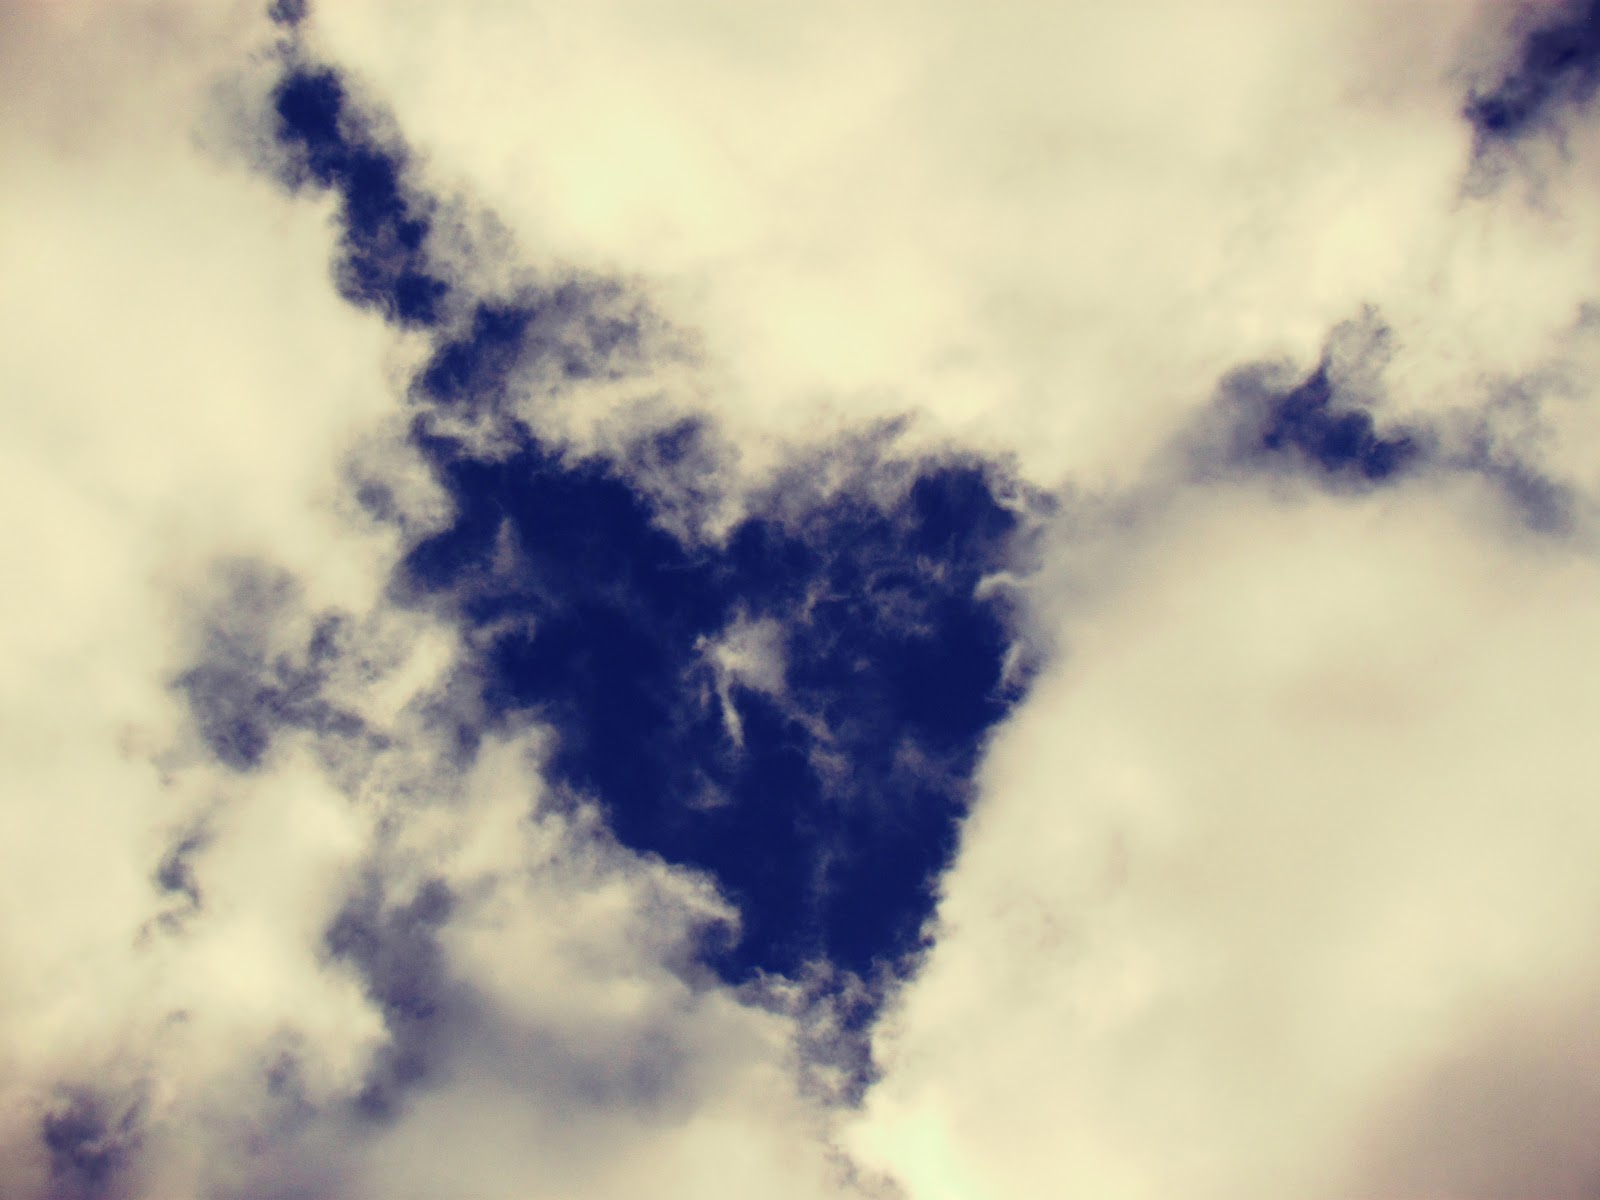 A dark blue sky with heart-shaped clouds in mother nature + atmospheric clouds